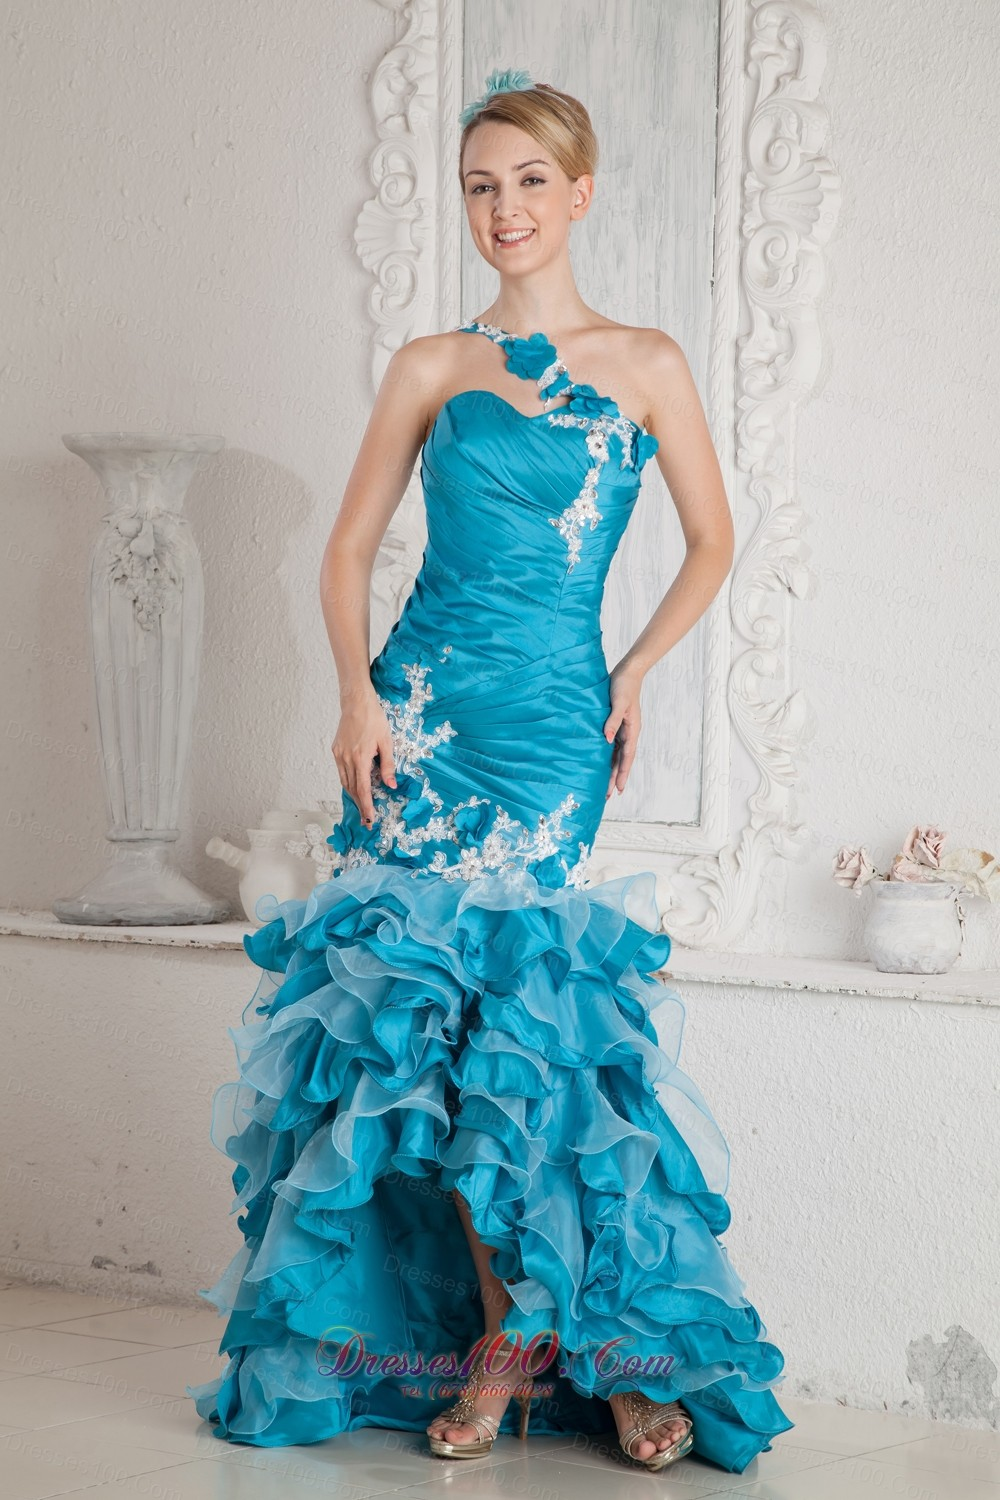 http://static.dresses1000.com/images/v/B3S50/prom-dresses-2013-union16t60345-1.jpg